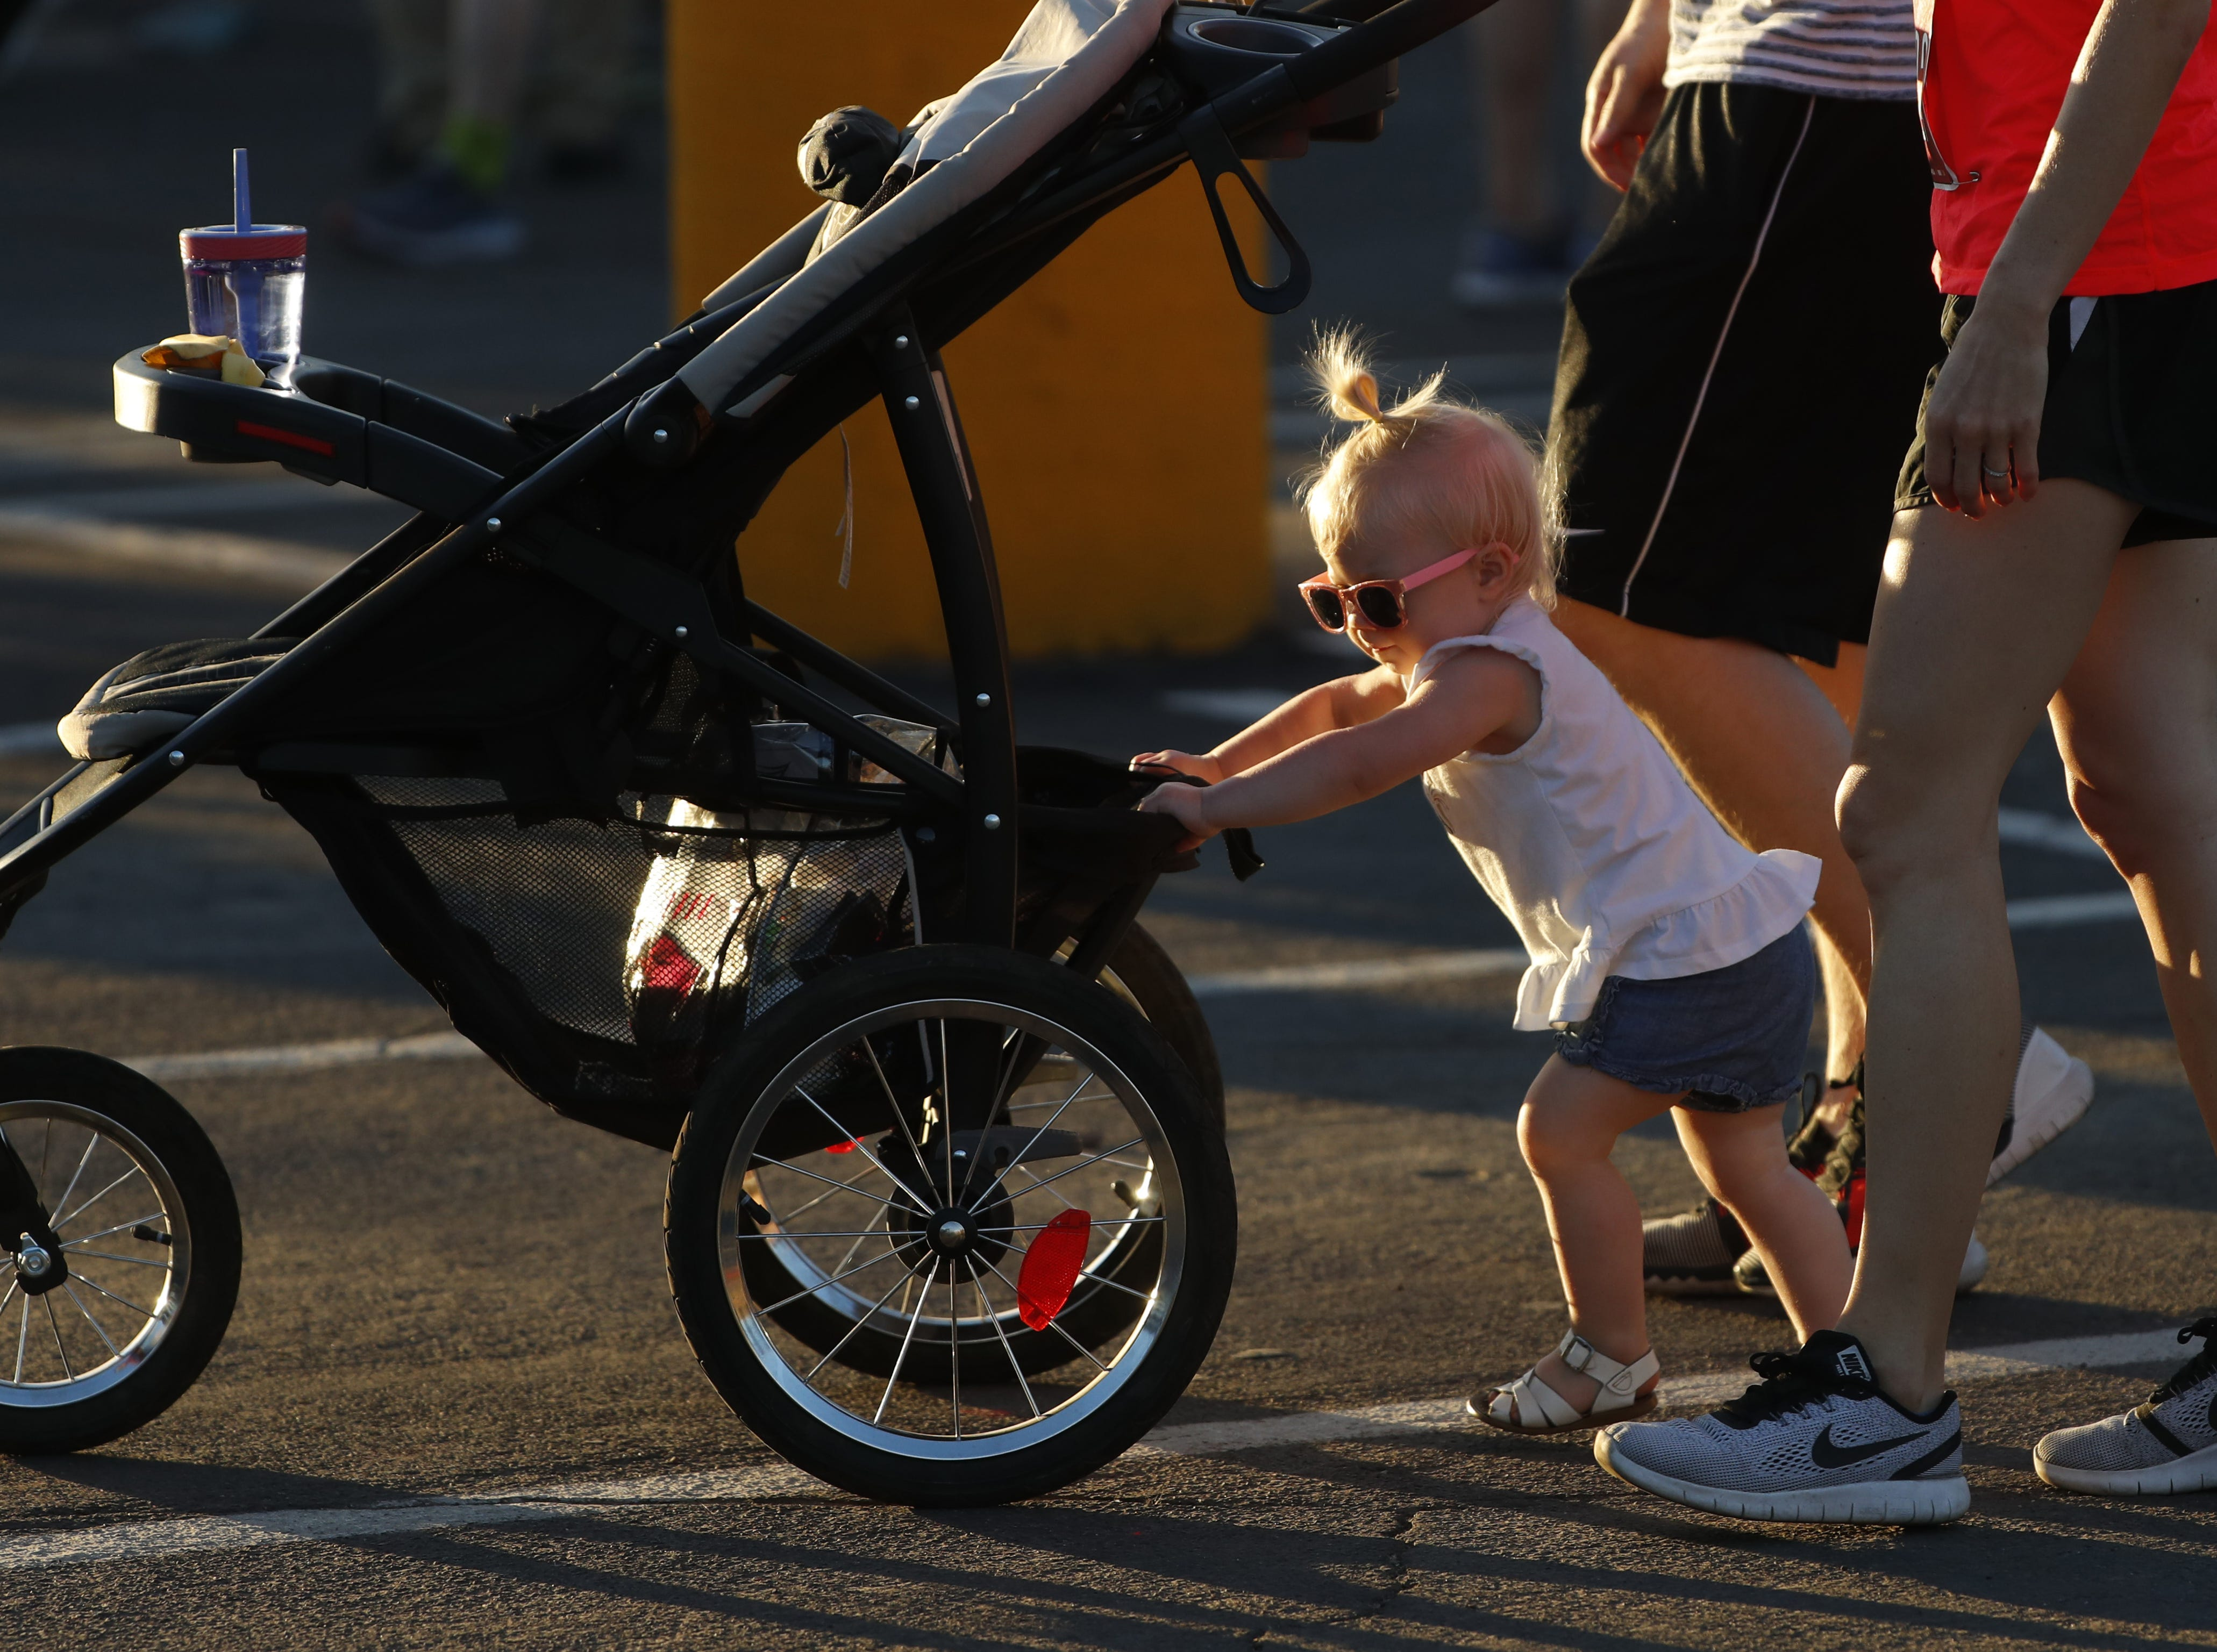 A young walker helps her parents push her stroller on the way to the starting line during Pat's Run 2019 in Tempe, Ariz. on April 27, 2019.